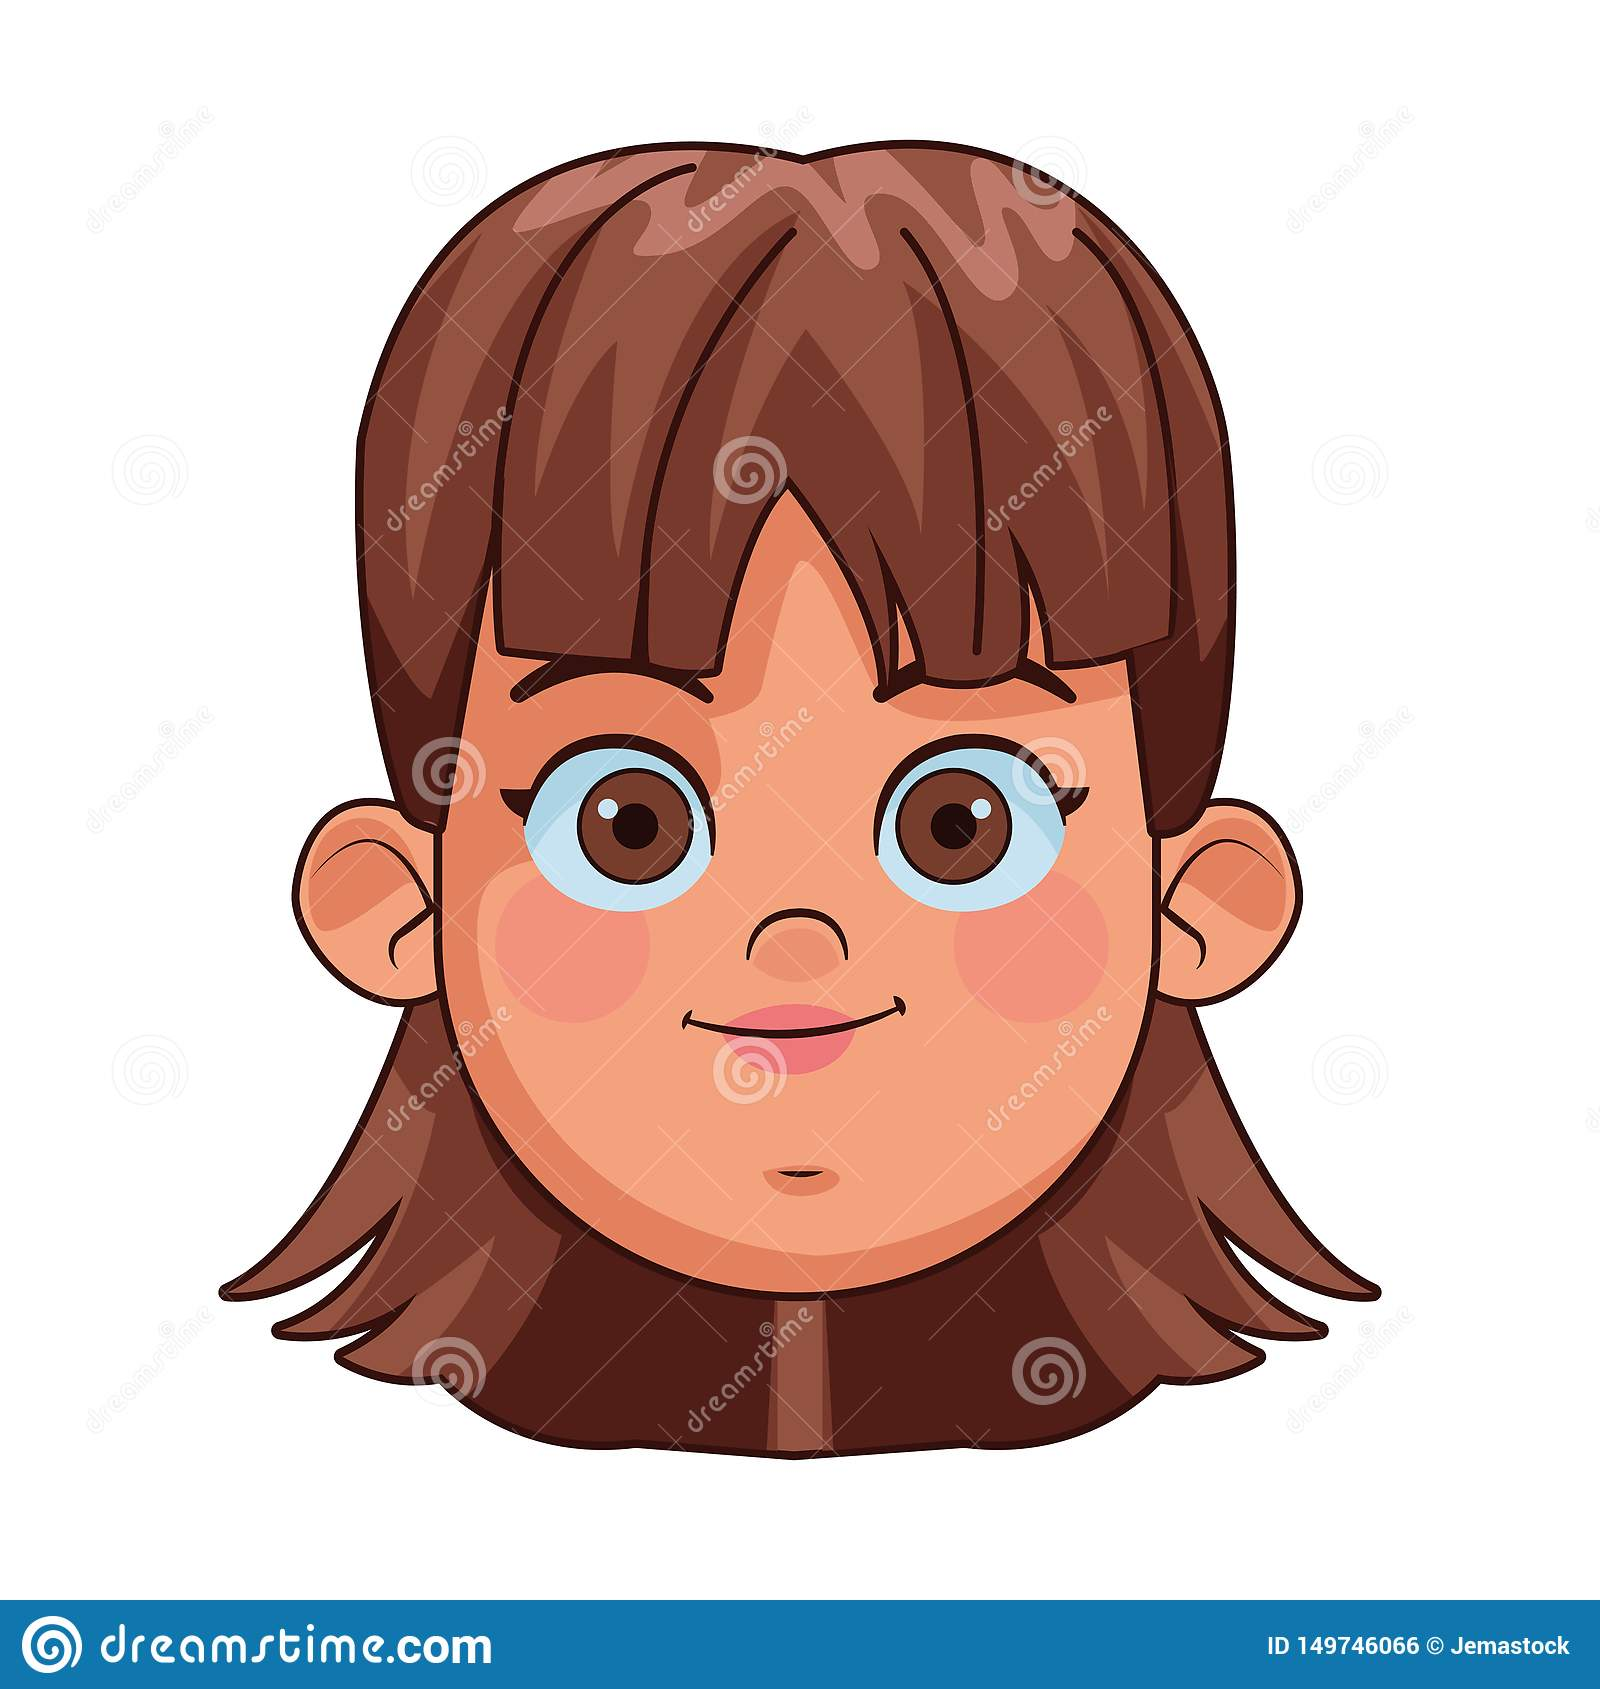 Girl Face Avatar Profile Picture Stock Vector Illustration Of